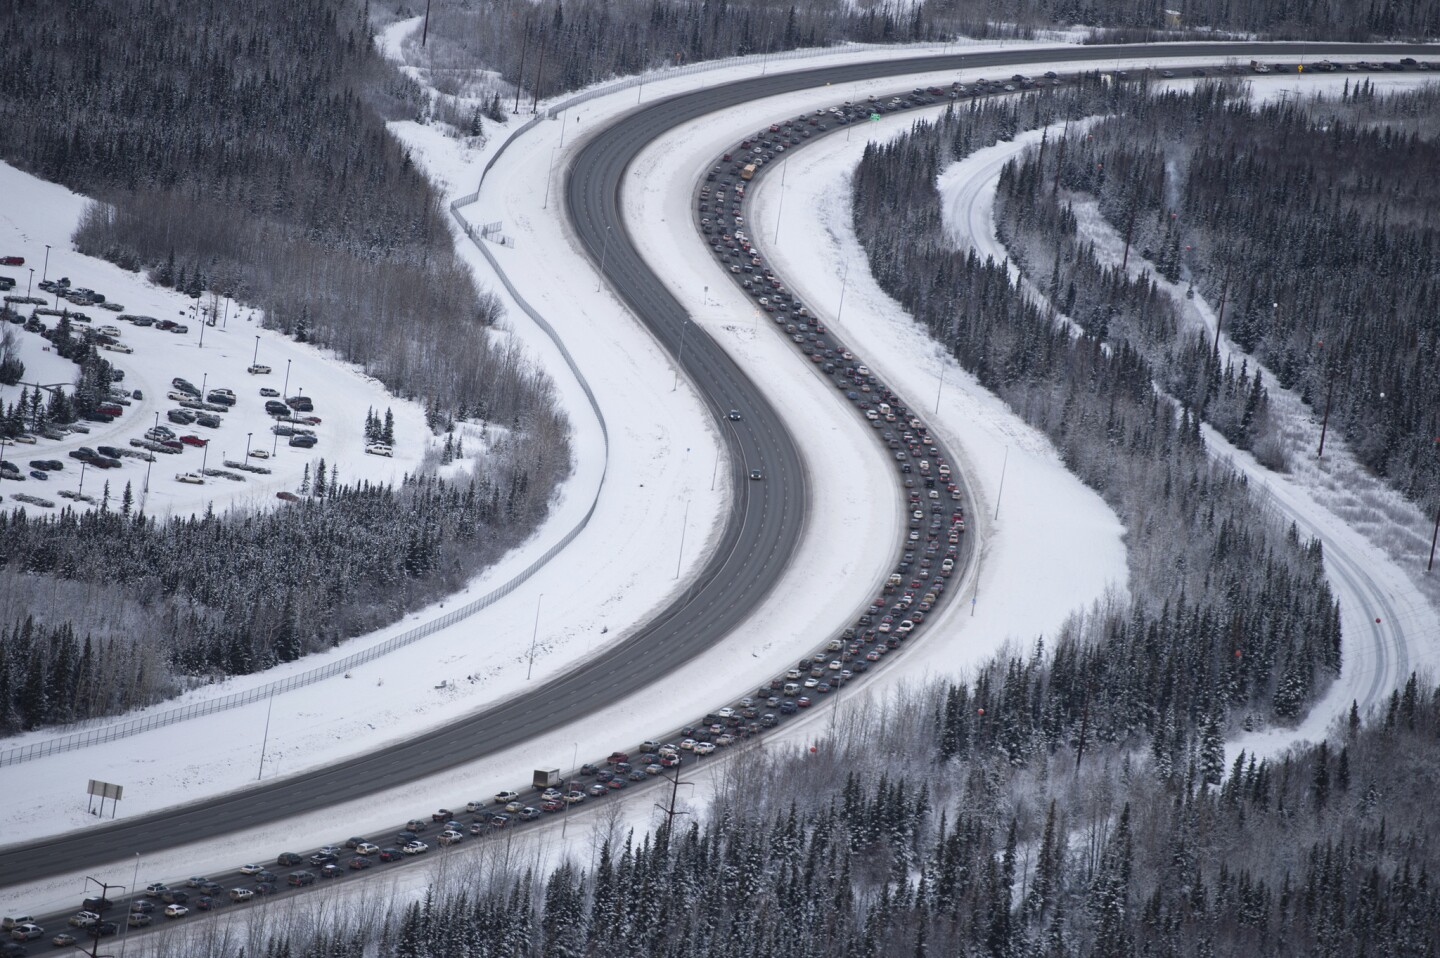 Traffic outbound from Anchorage on the Glenn Highway was at a standstill after a 7.0-magnitude earthquake caused damage in Anchorage, Alaska, on Nov. 30, 2018.